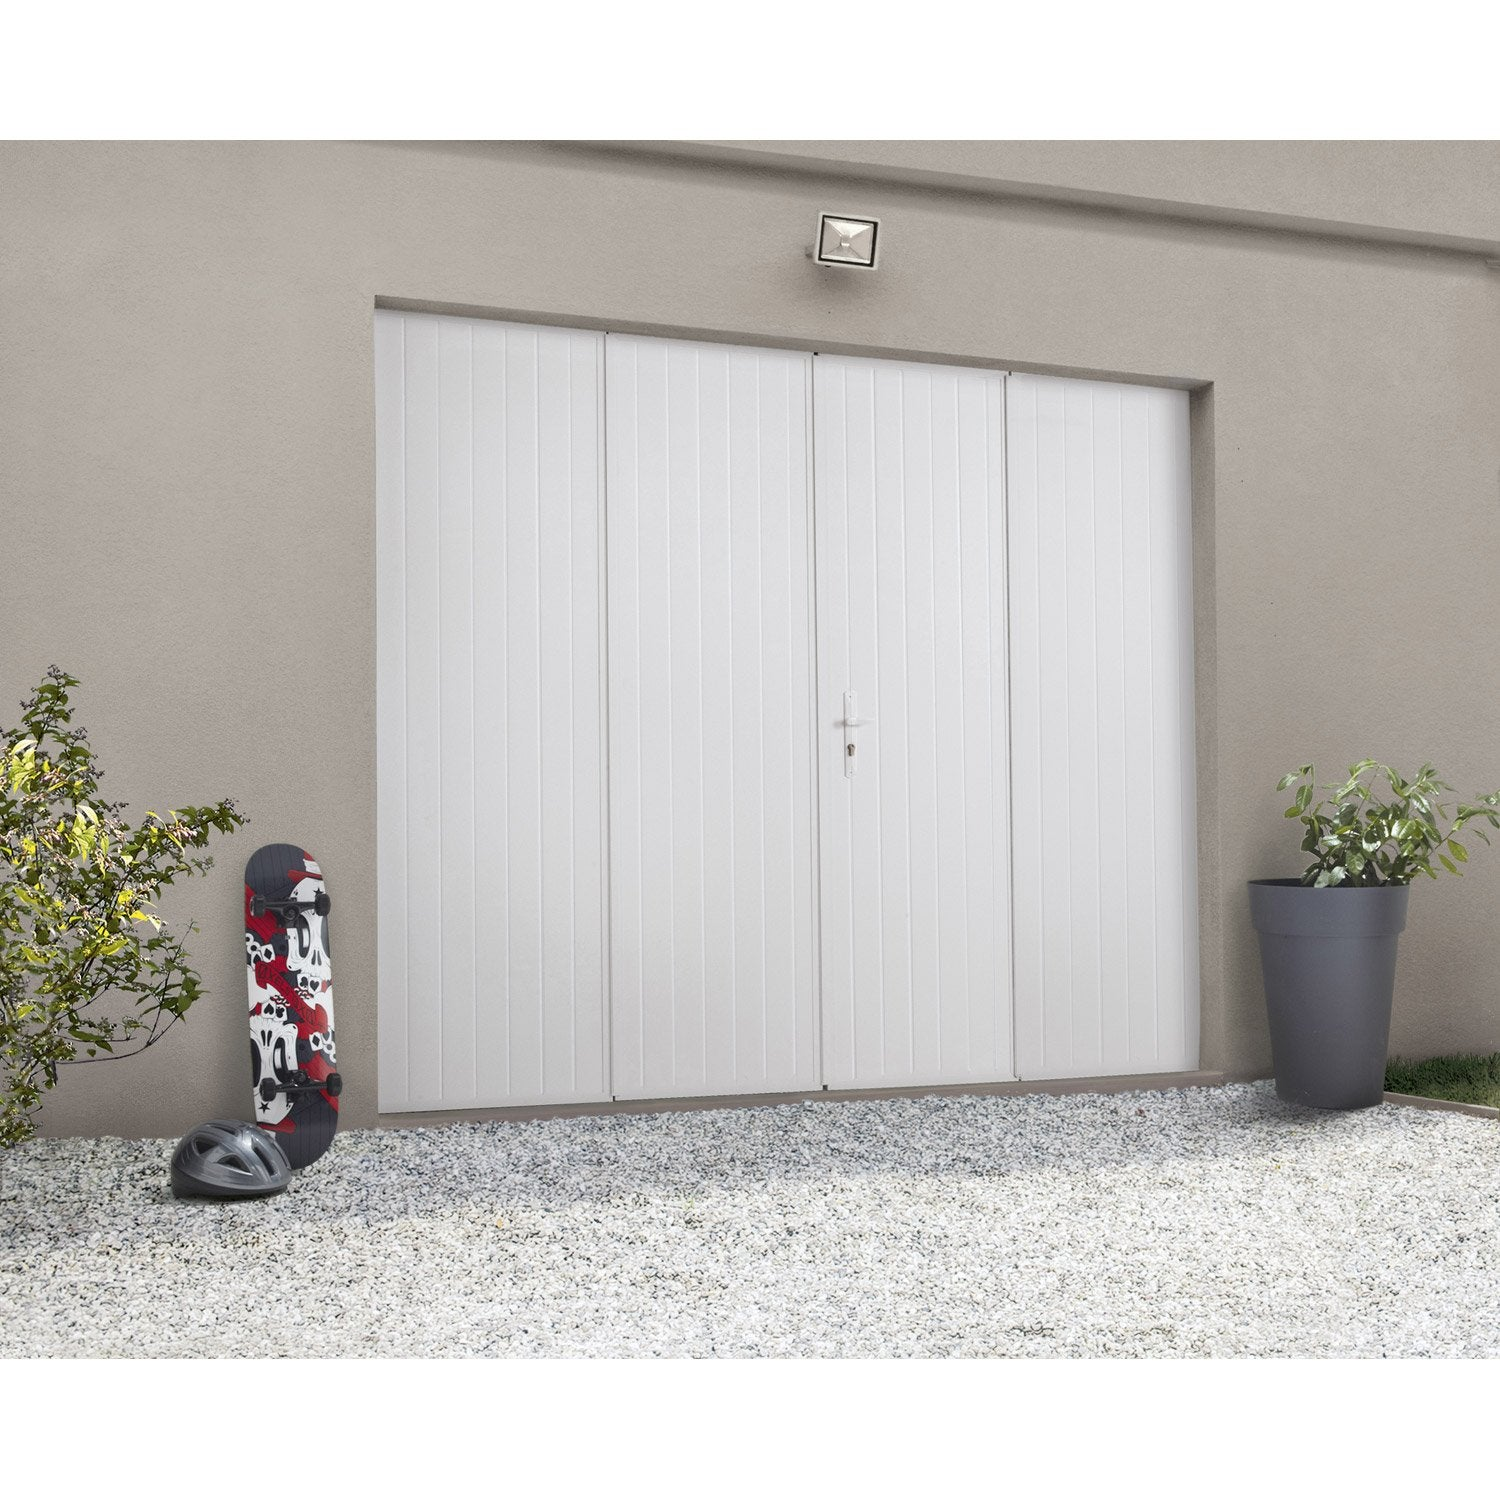 Porte de garage pliante manuelle artens essentiel 200 x for Porte de garage enroulable isolante